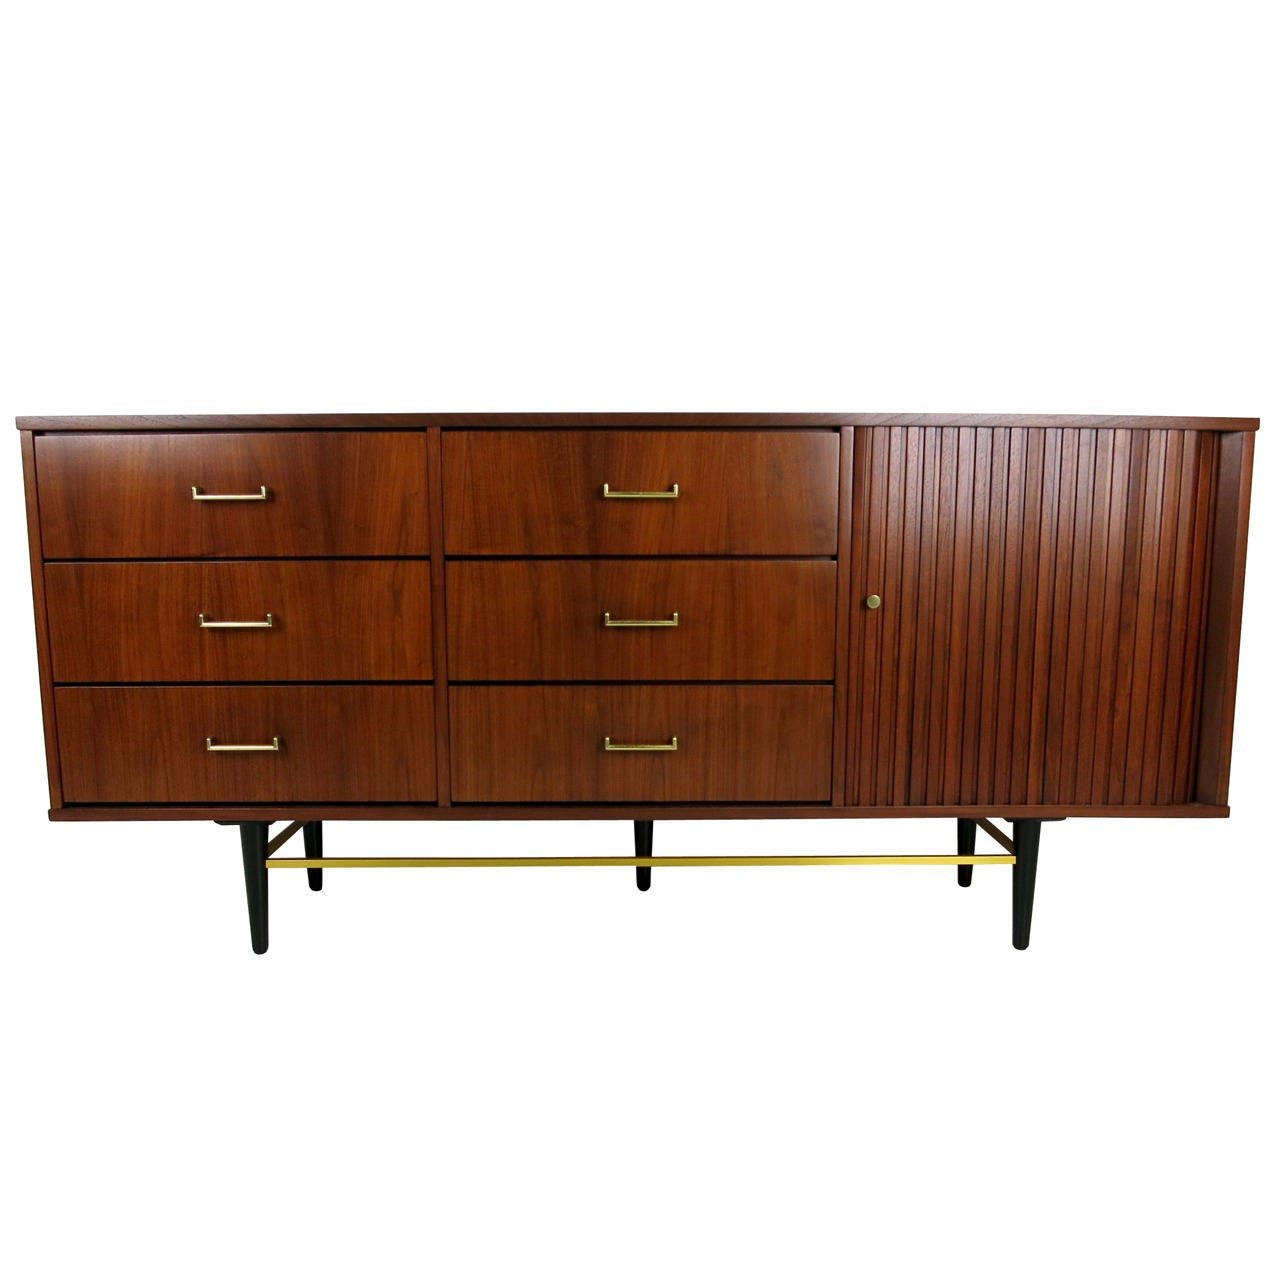 Figured Walnut Tambour Door Dresser with Brass Stretchers